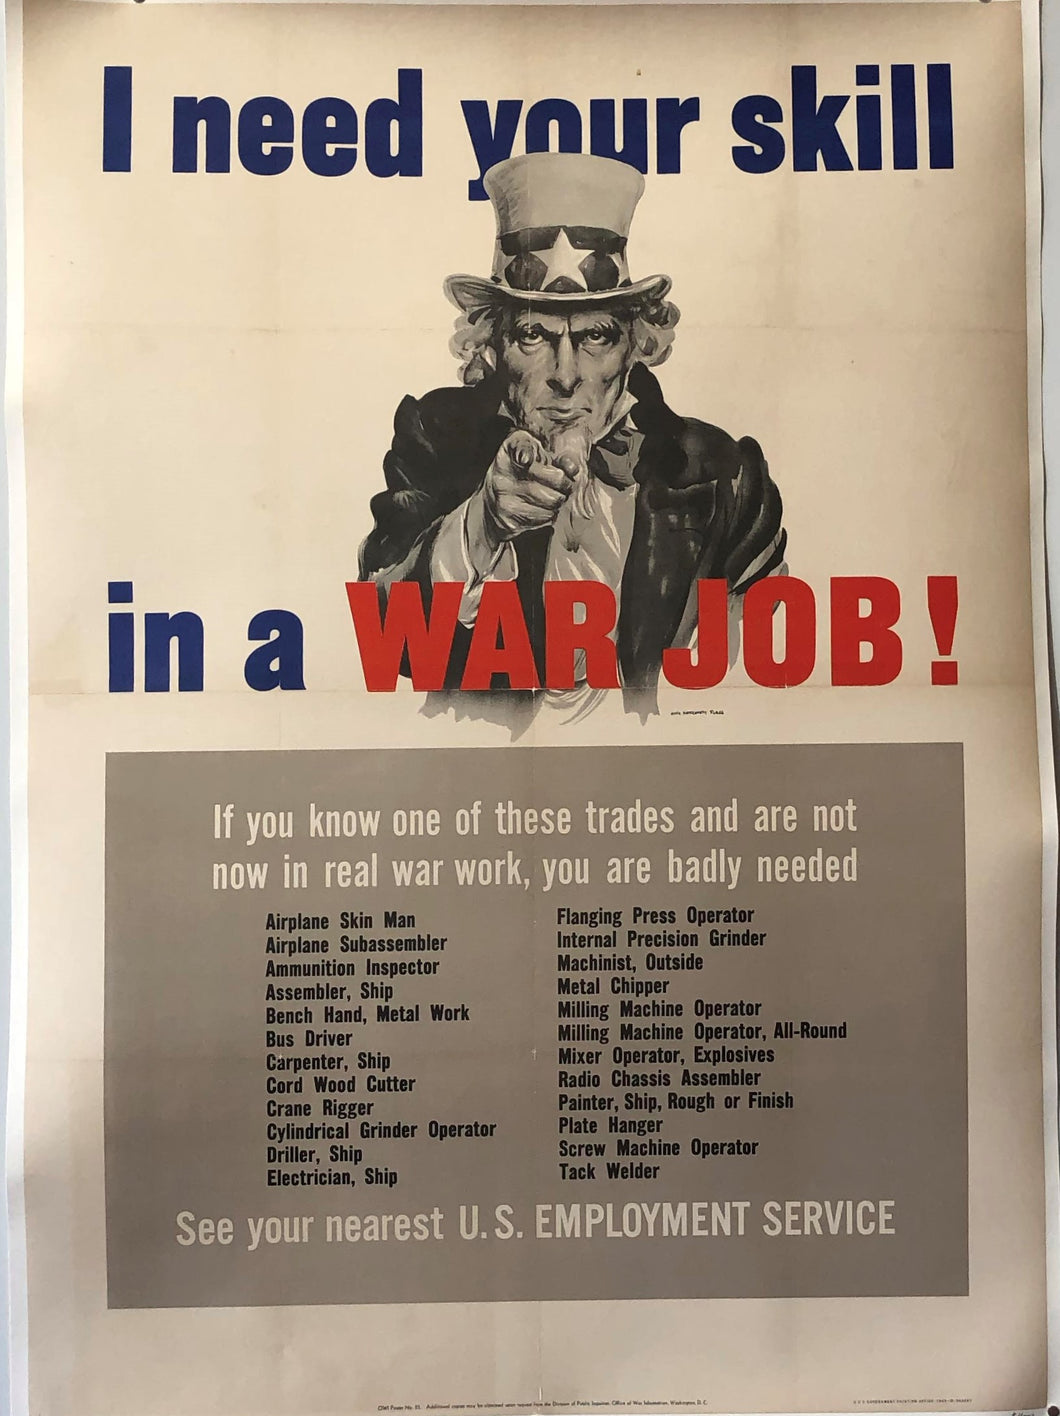 I Need Your Skill in a War Job!